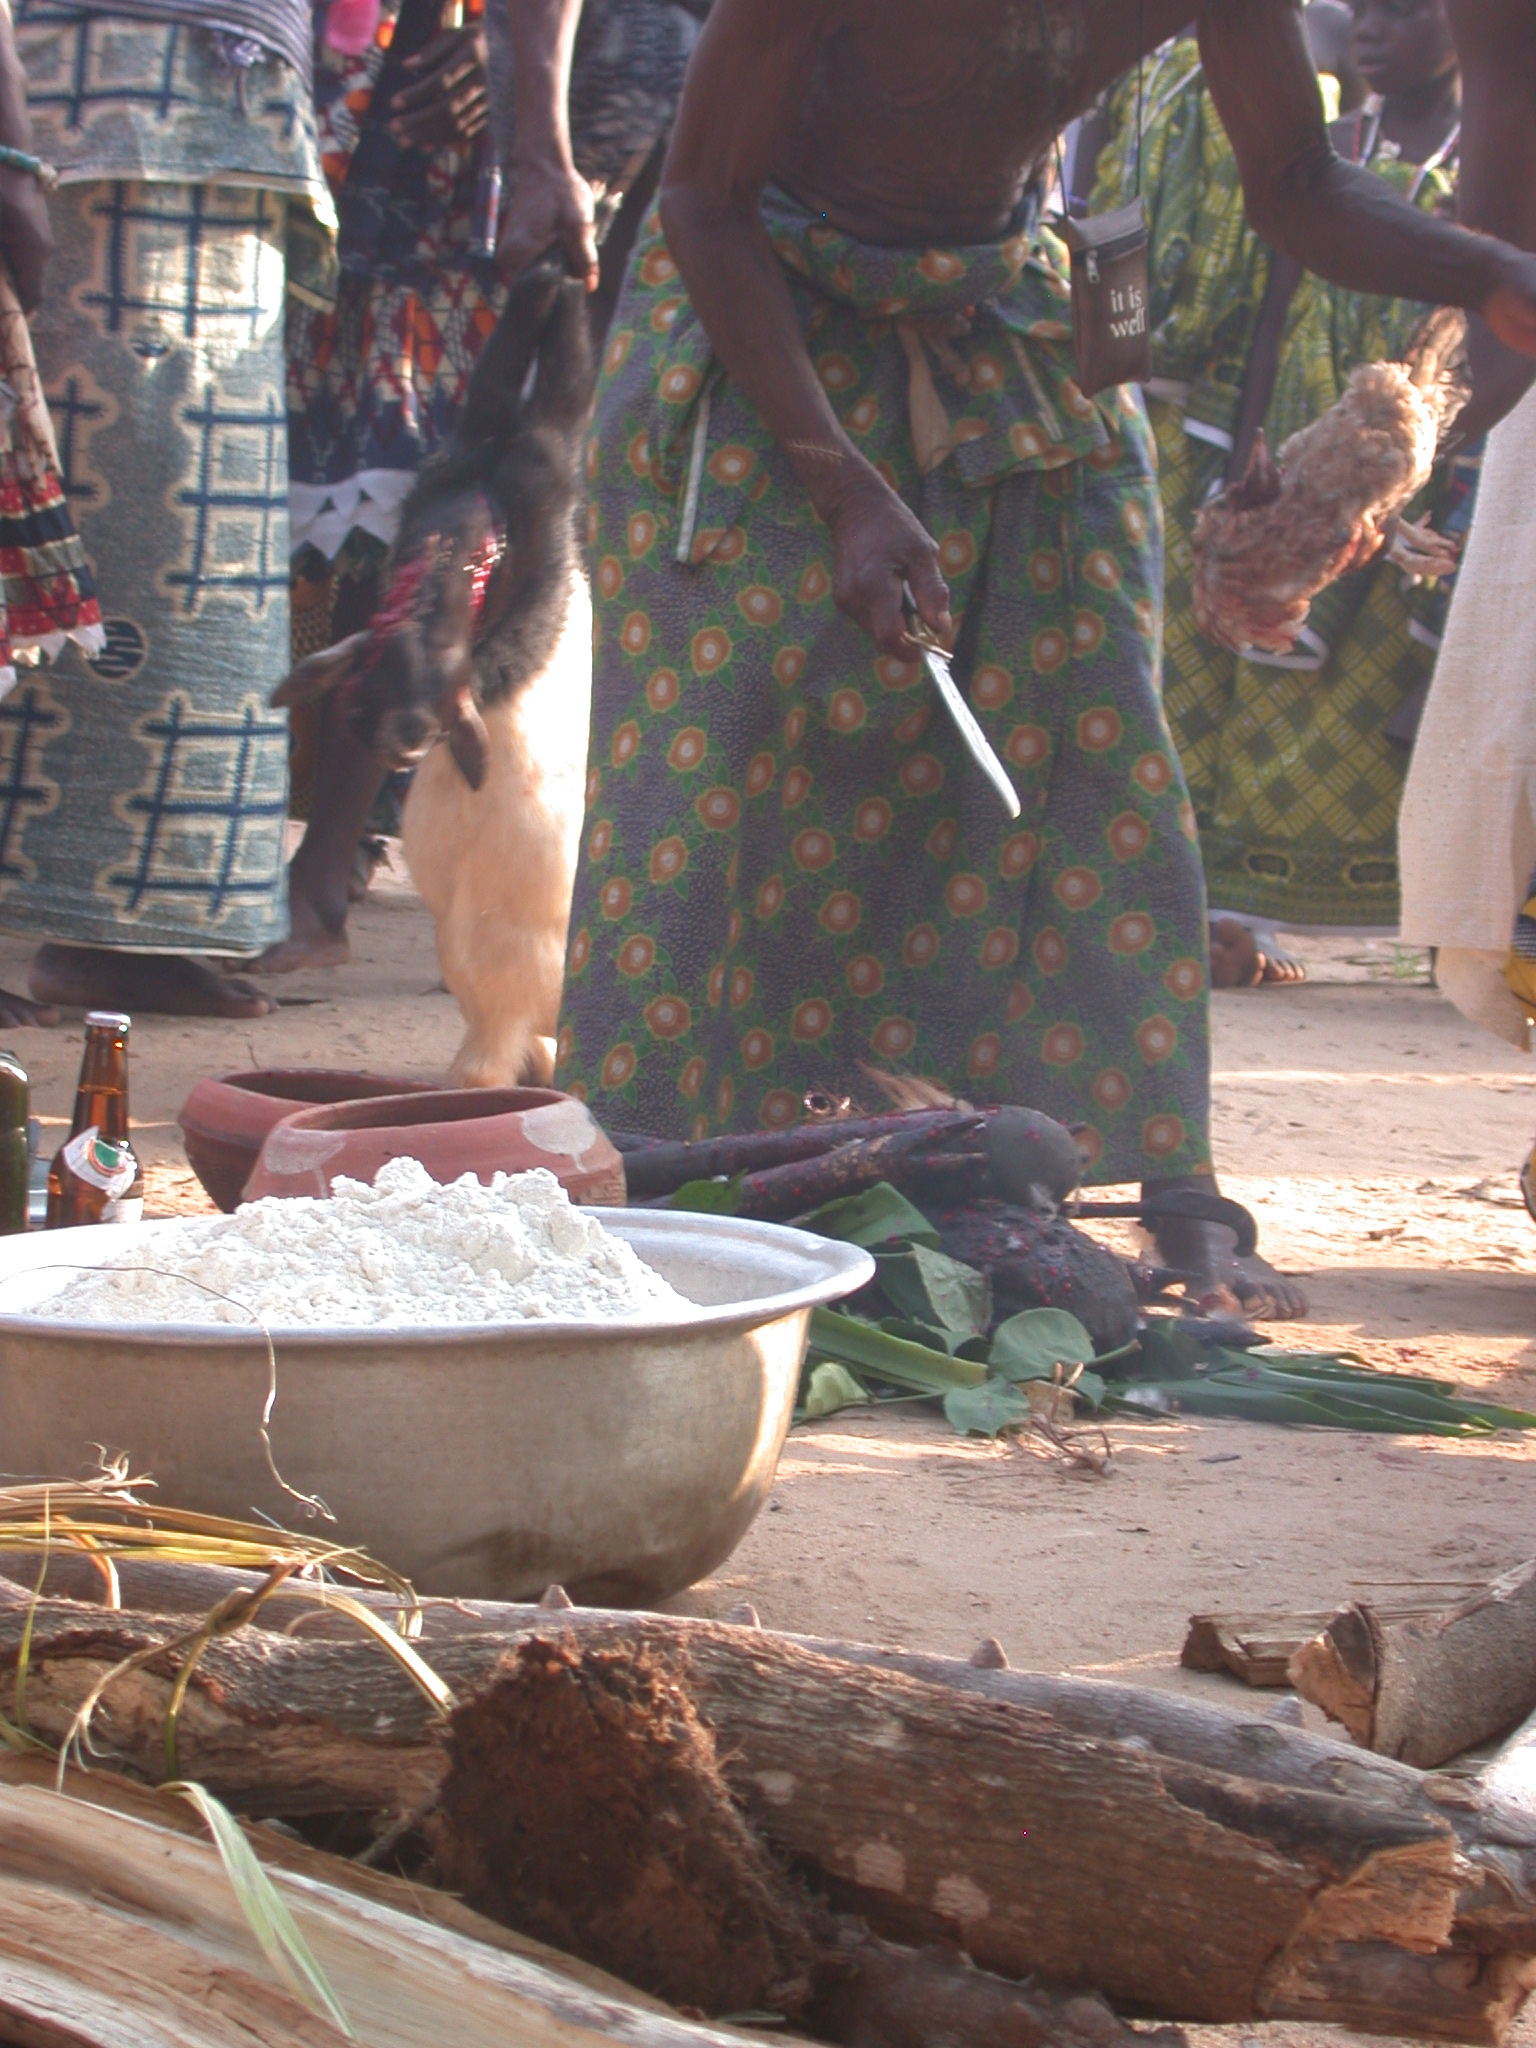 Adding a Cat or Rabbit and a Chicken to the Sacrifice, Vodun Ritual, Ouidah, Benin